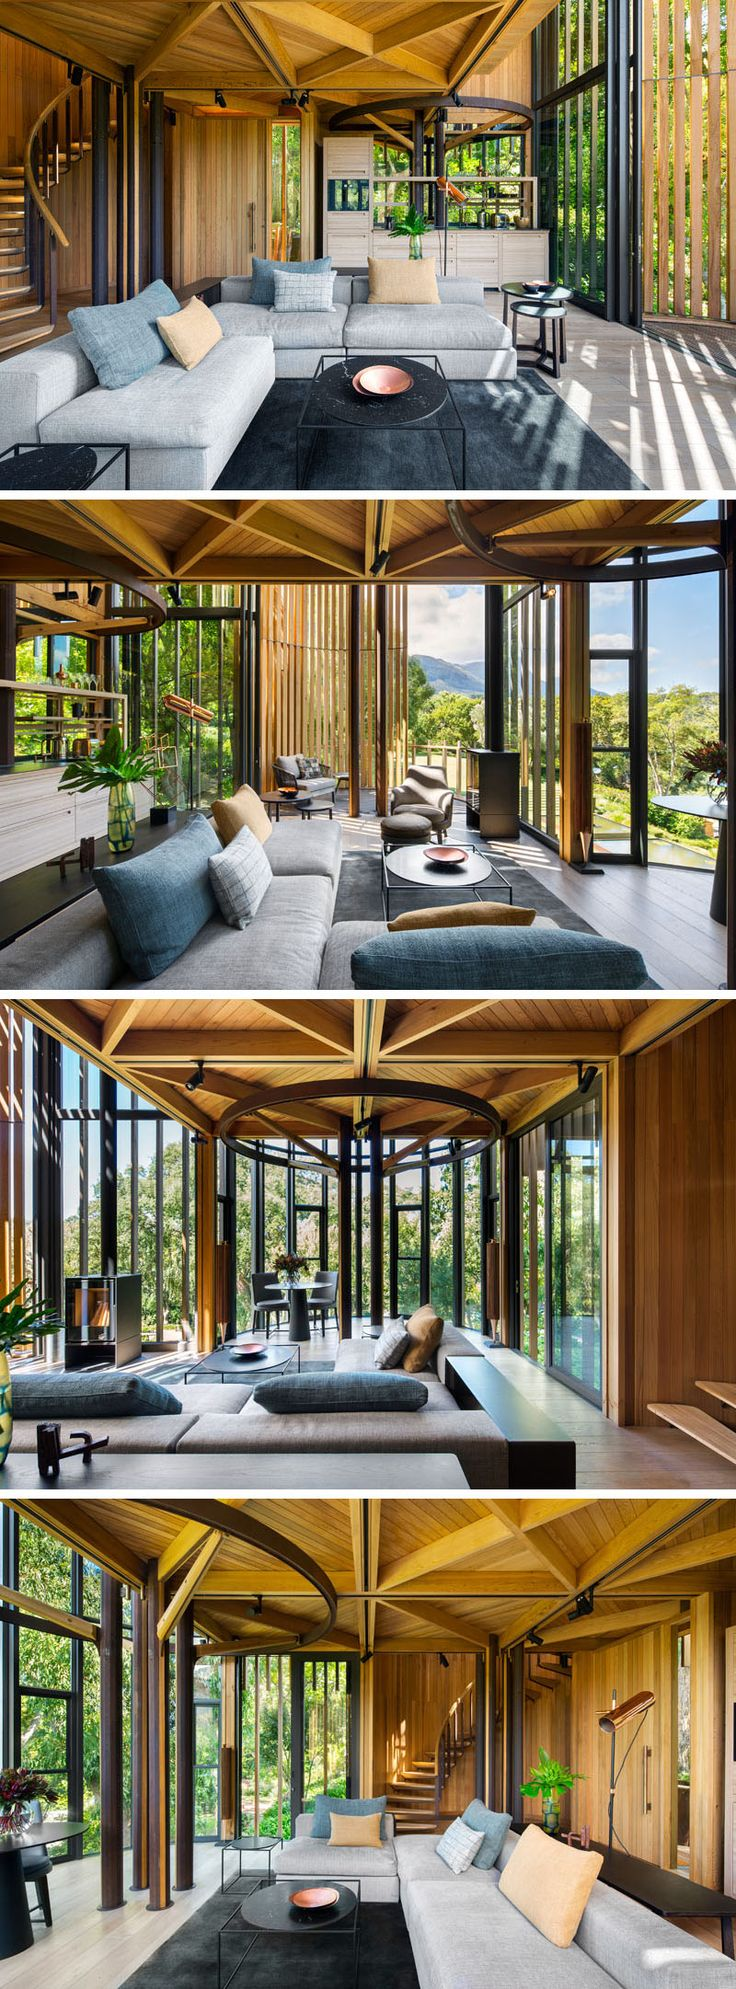 Interior design for first home - The First Floor Of This Modern Tree House Is Home To The Living Room That Opens